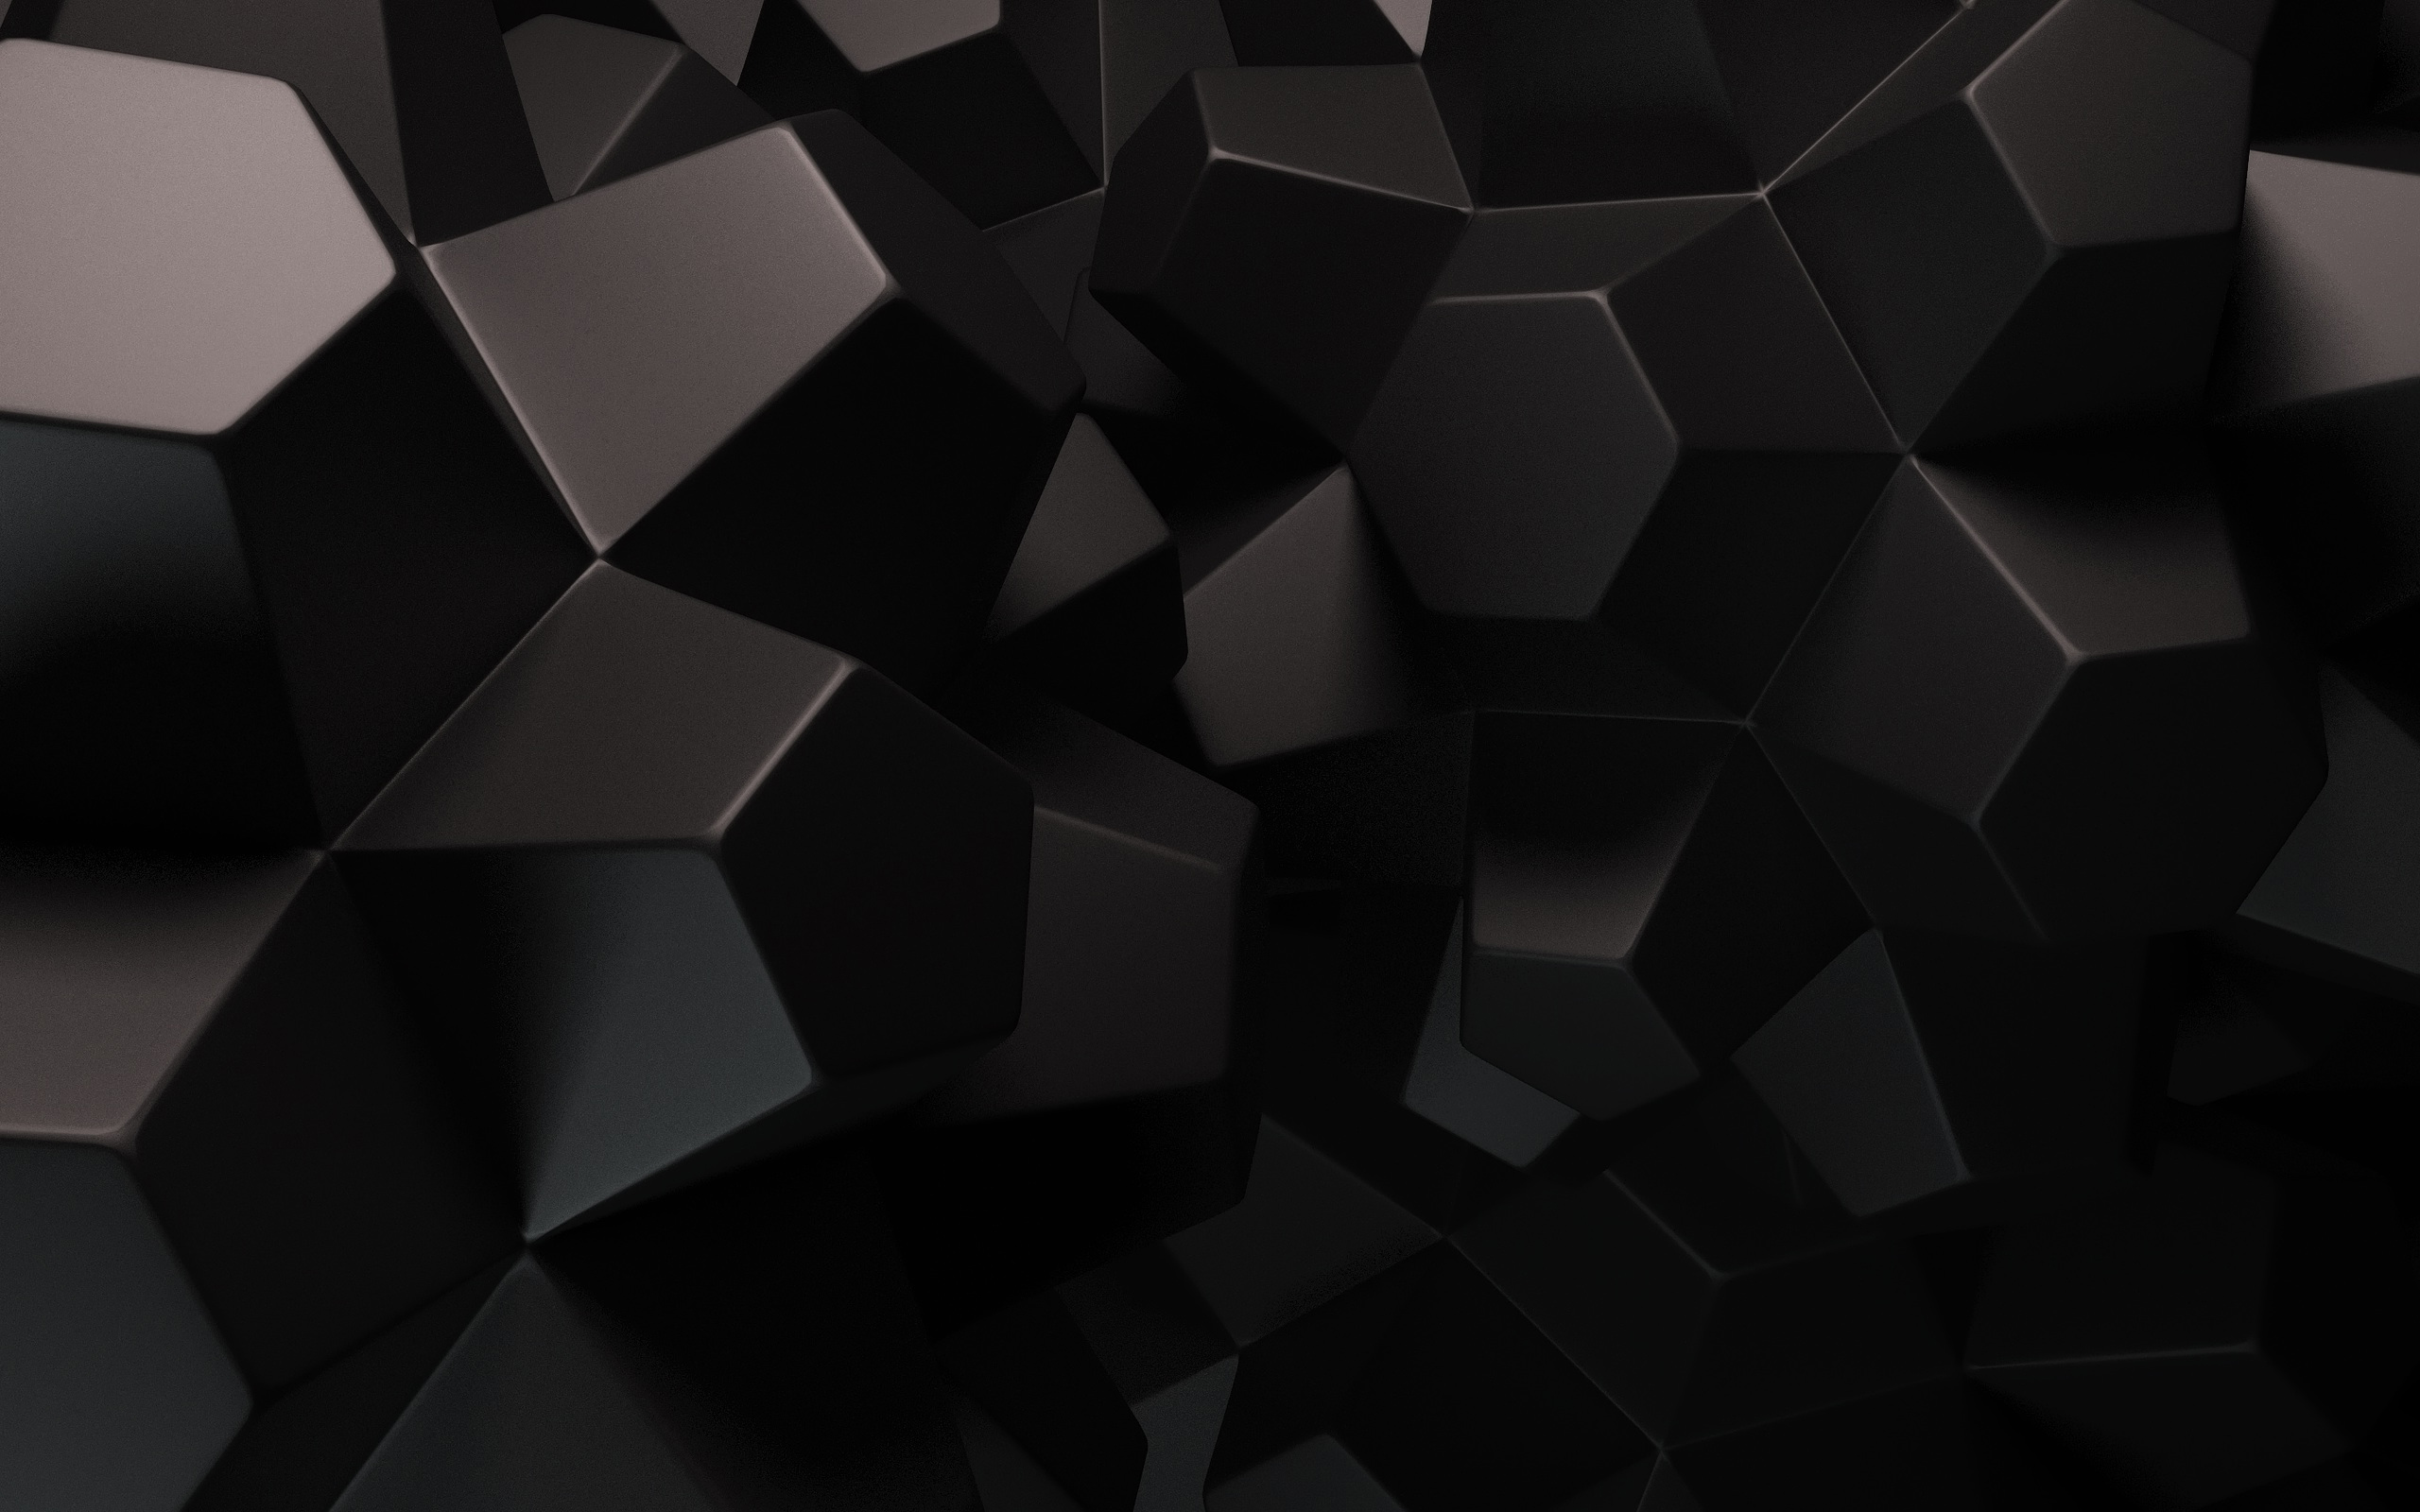 Black 3d Wallpaper 1080p for Desktop Background Wallpaper Cool